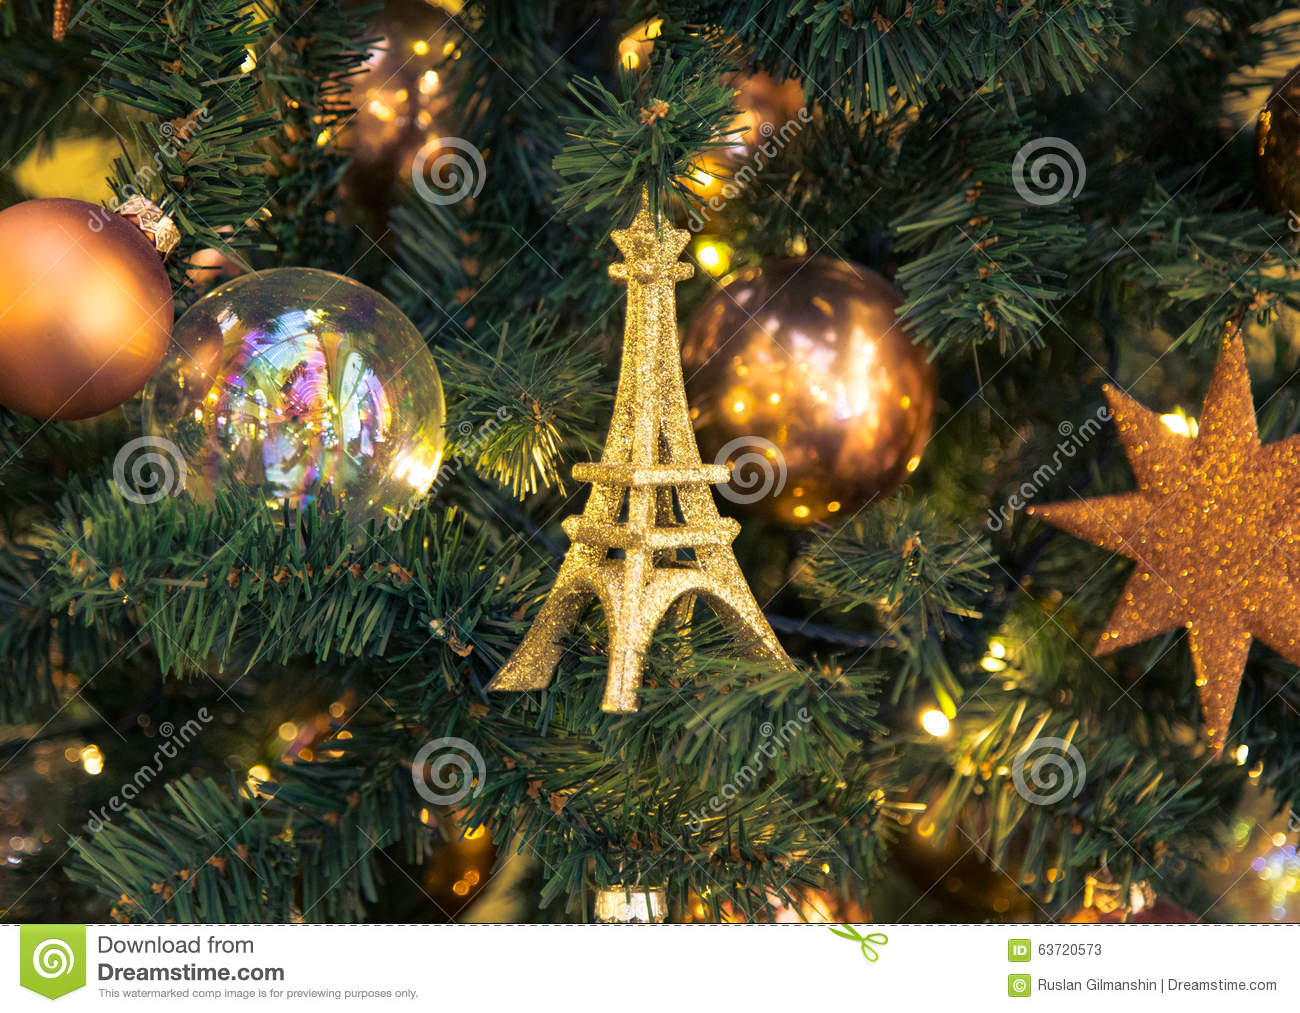 Eiffel tower christmas tree ornament - Christmas Decorations With Eiffel Tower